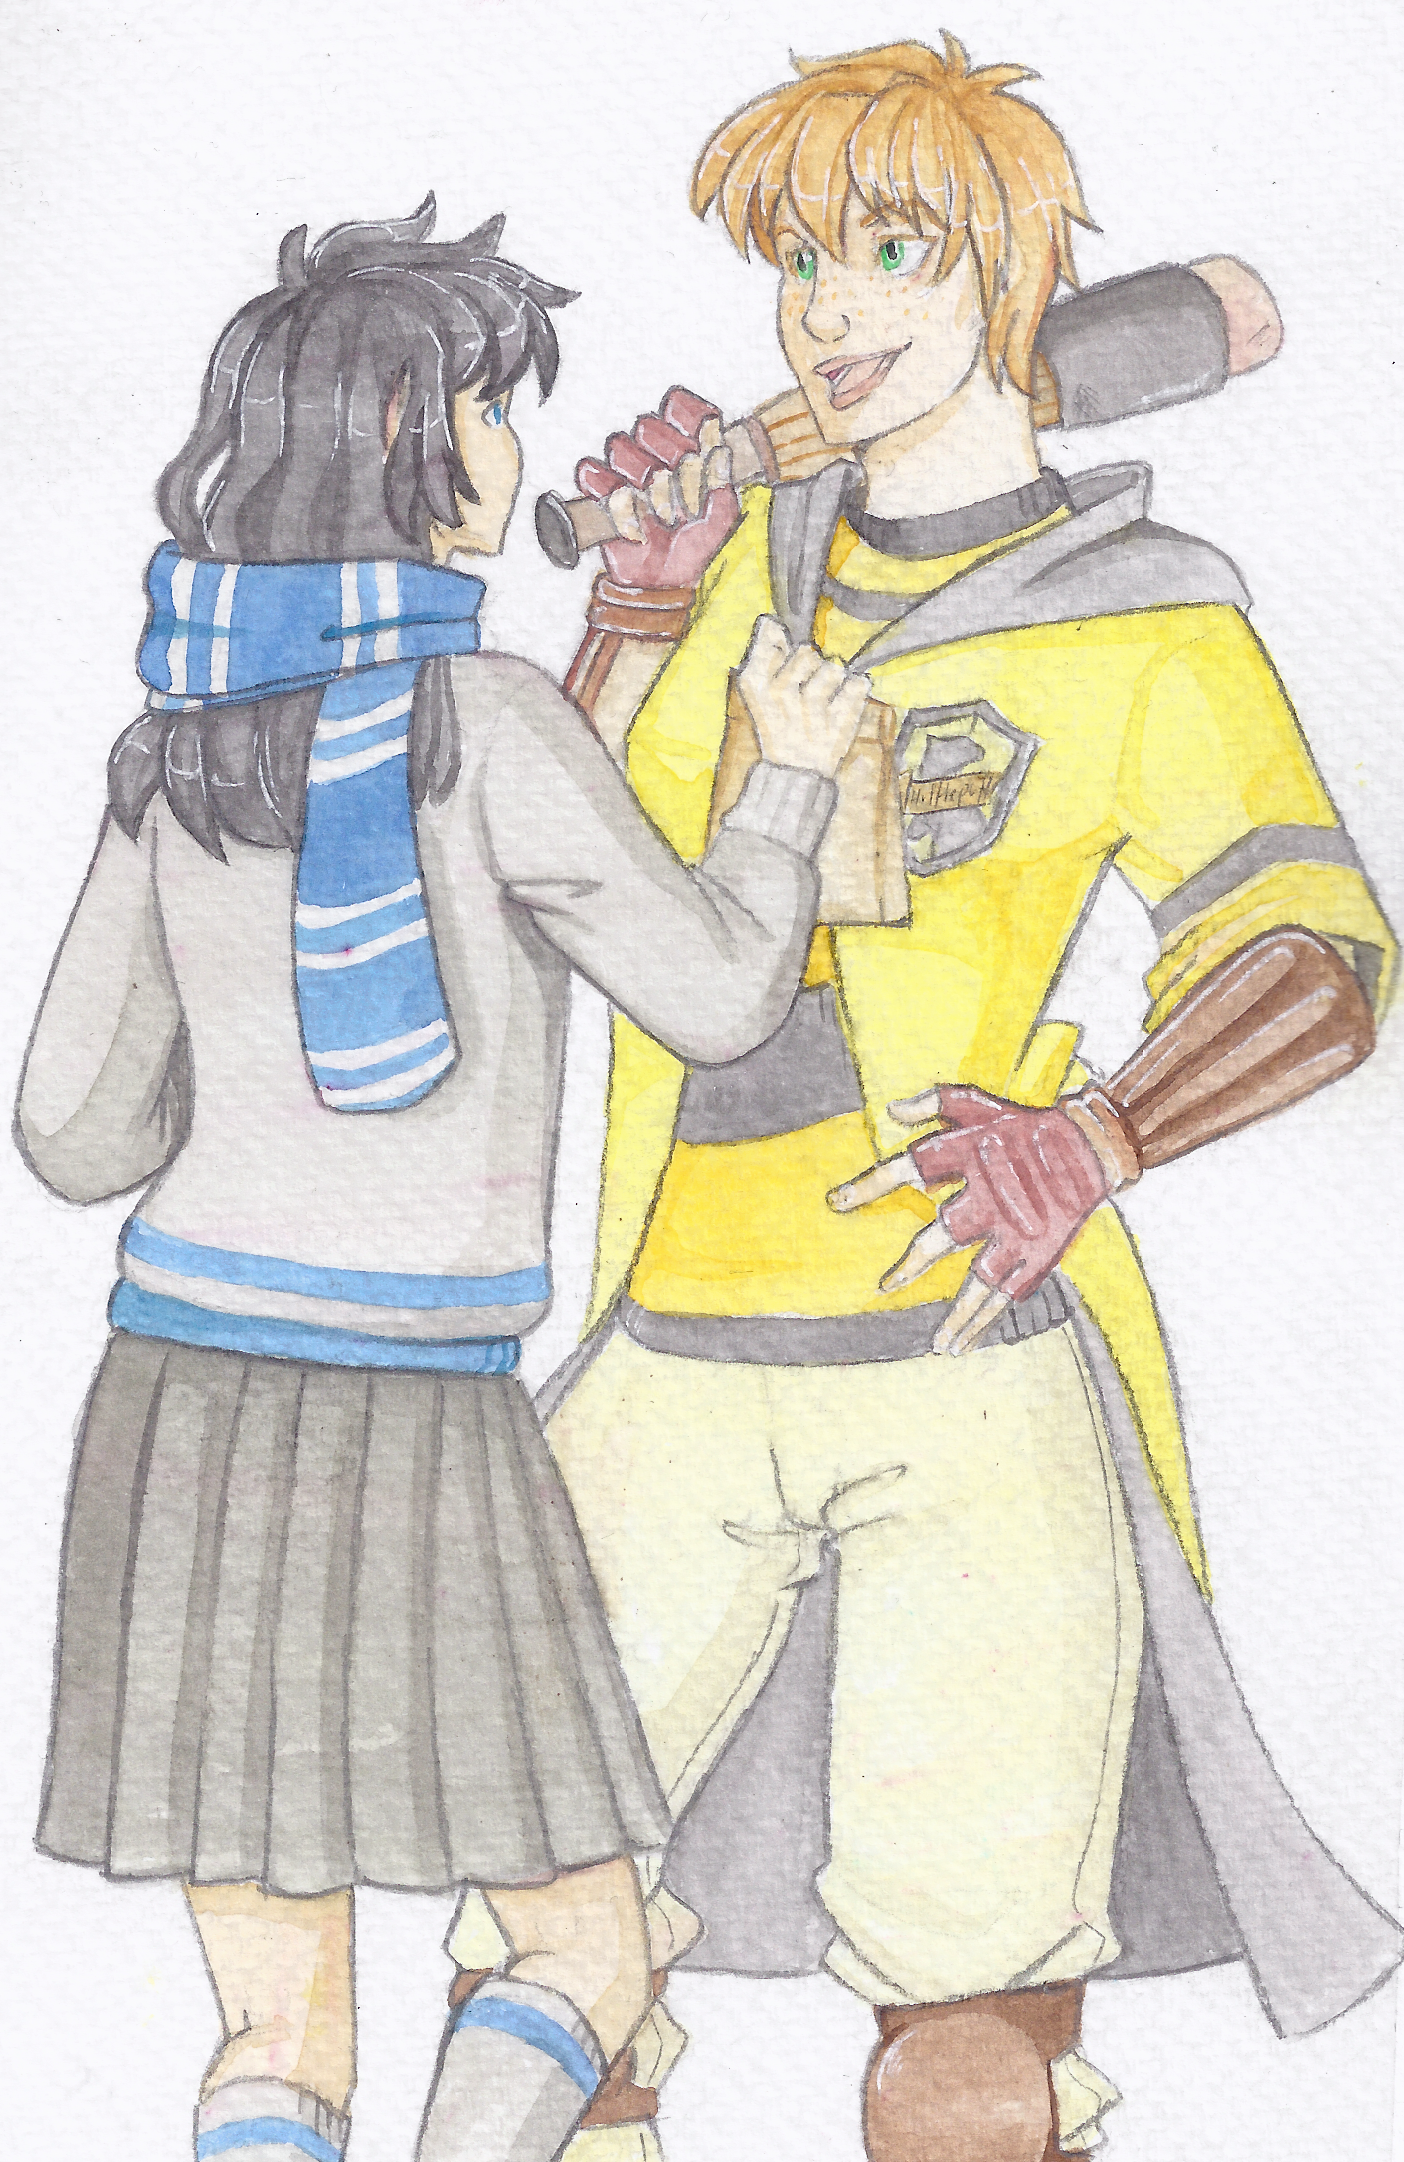 Beater!Deanne (fem!Dean) and Castielle chat before a game. Just a rapid sketch done with watercolour about my two favourite idjits XD